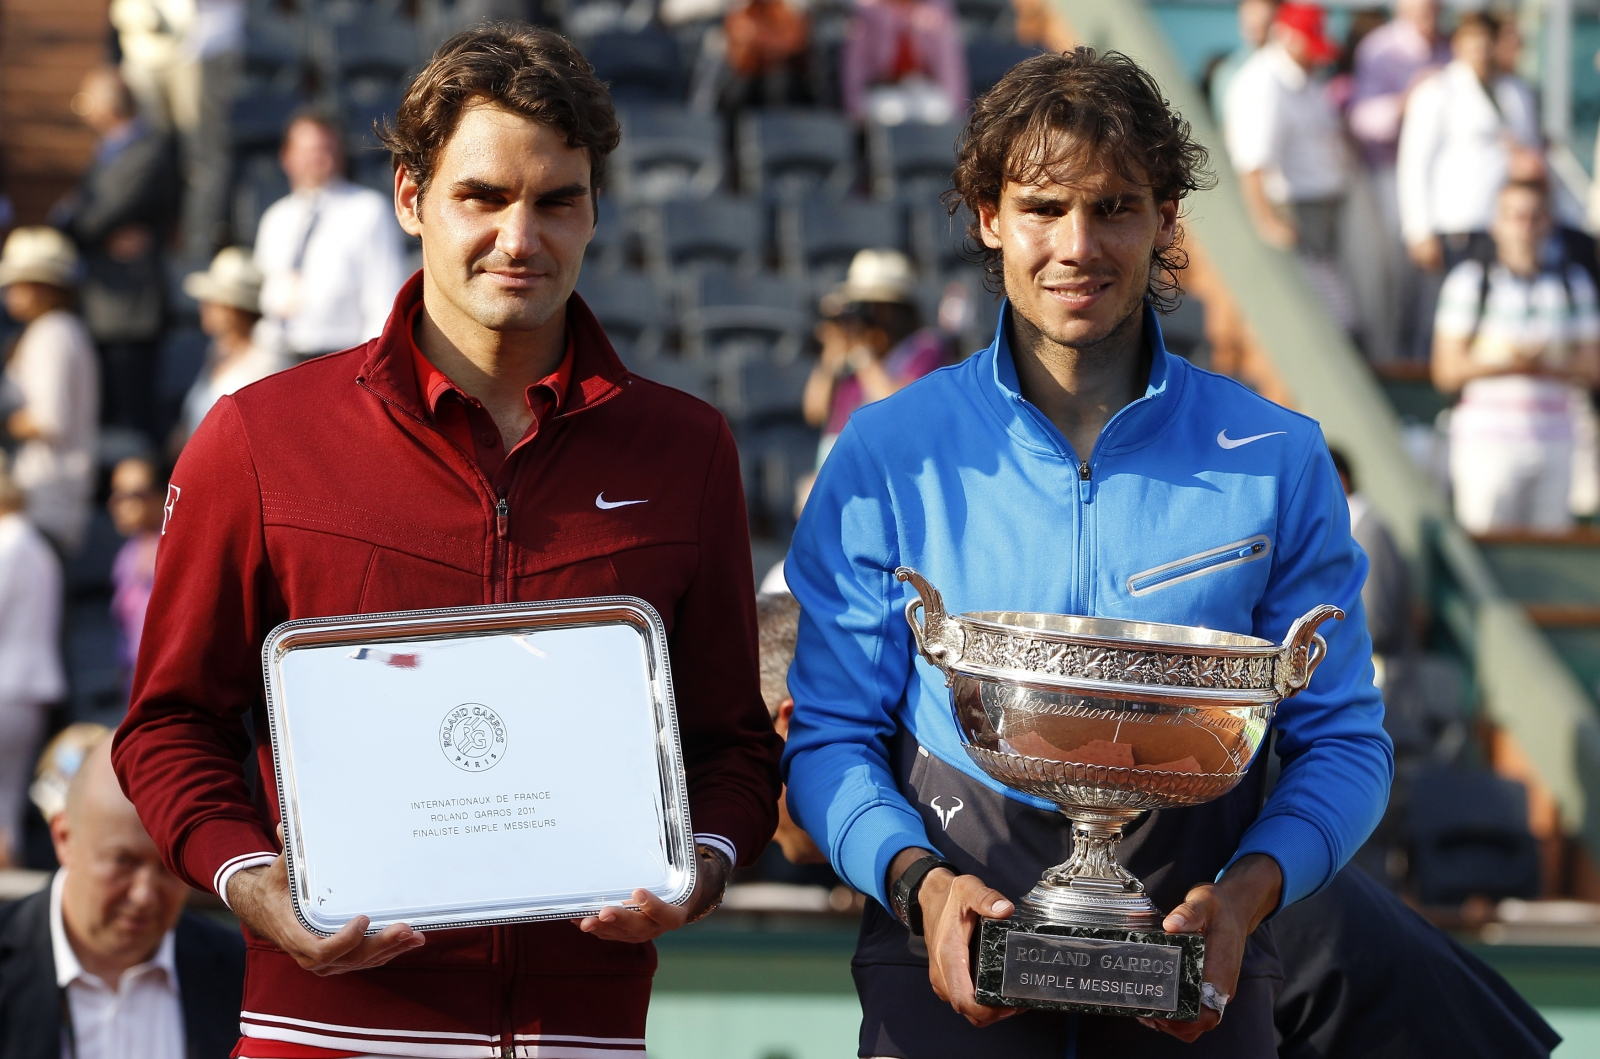 image Roger federer and rafael nadal share the trophy